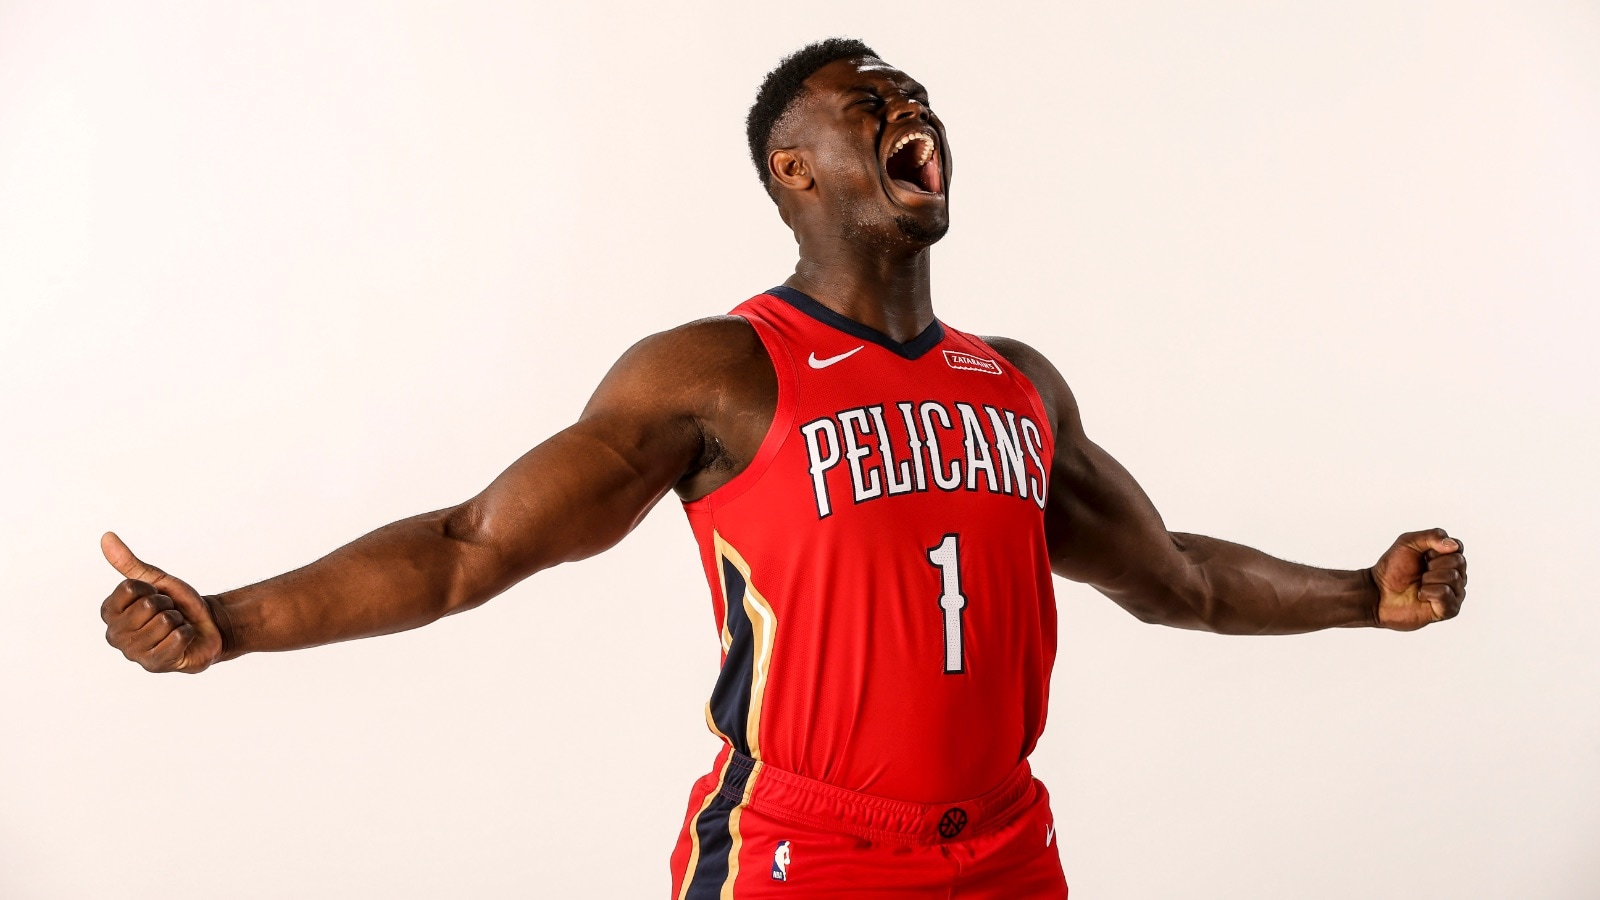 Zion Williamson #1 of the New Orleans Pelicans poses for a portrait on June 21, 2019 at the Ochsner Sports Performance Center in New Orleans, Louisiana.